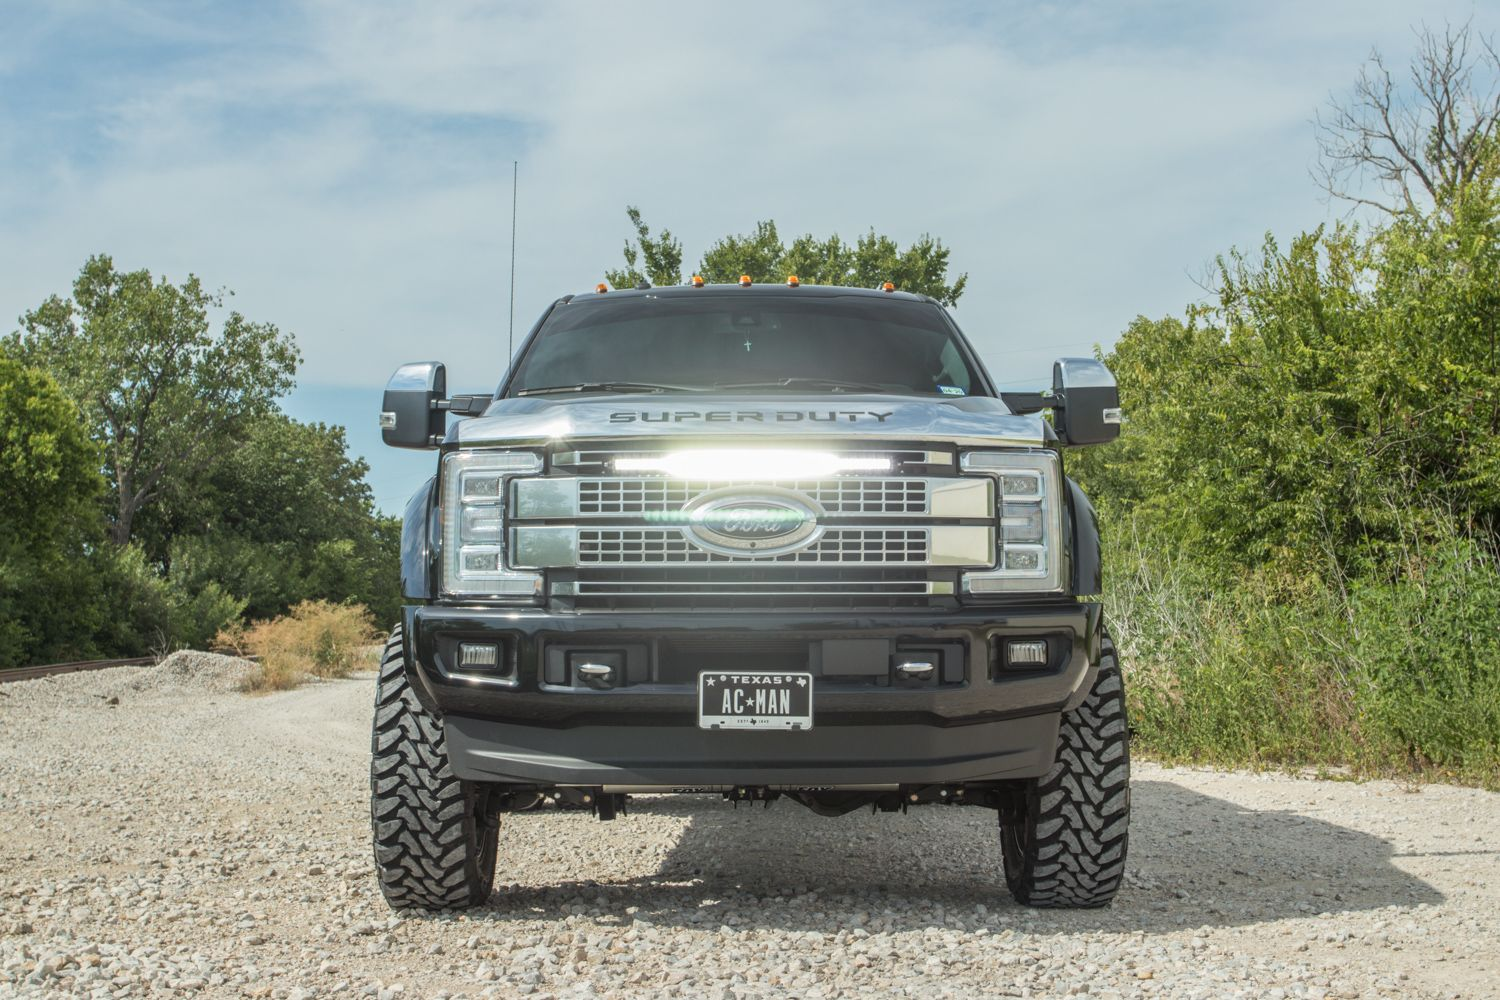 Custom Led Light Bar In Super Duty Platinum Grill On A Lifted 4x4 Truck Built By Rad Rides In Garland Texas Light Bar Truck Ford Super Duty Trucks Bar Lighting